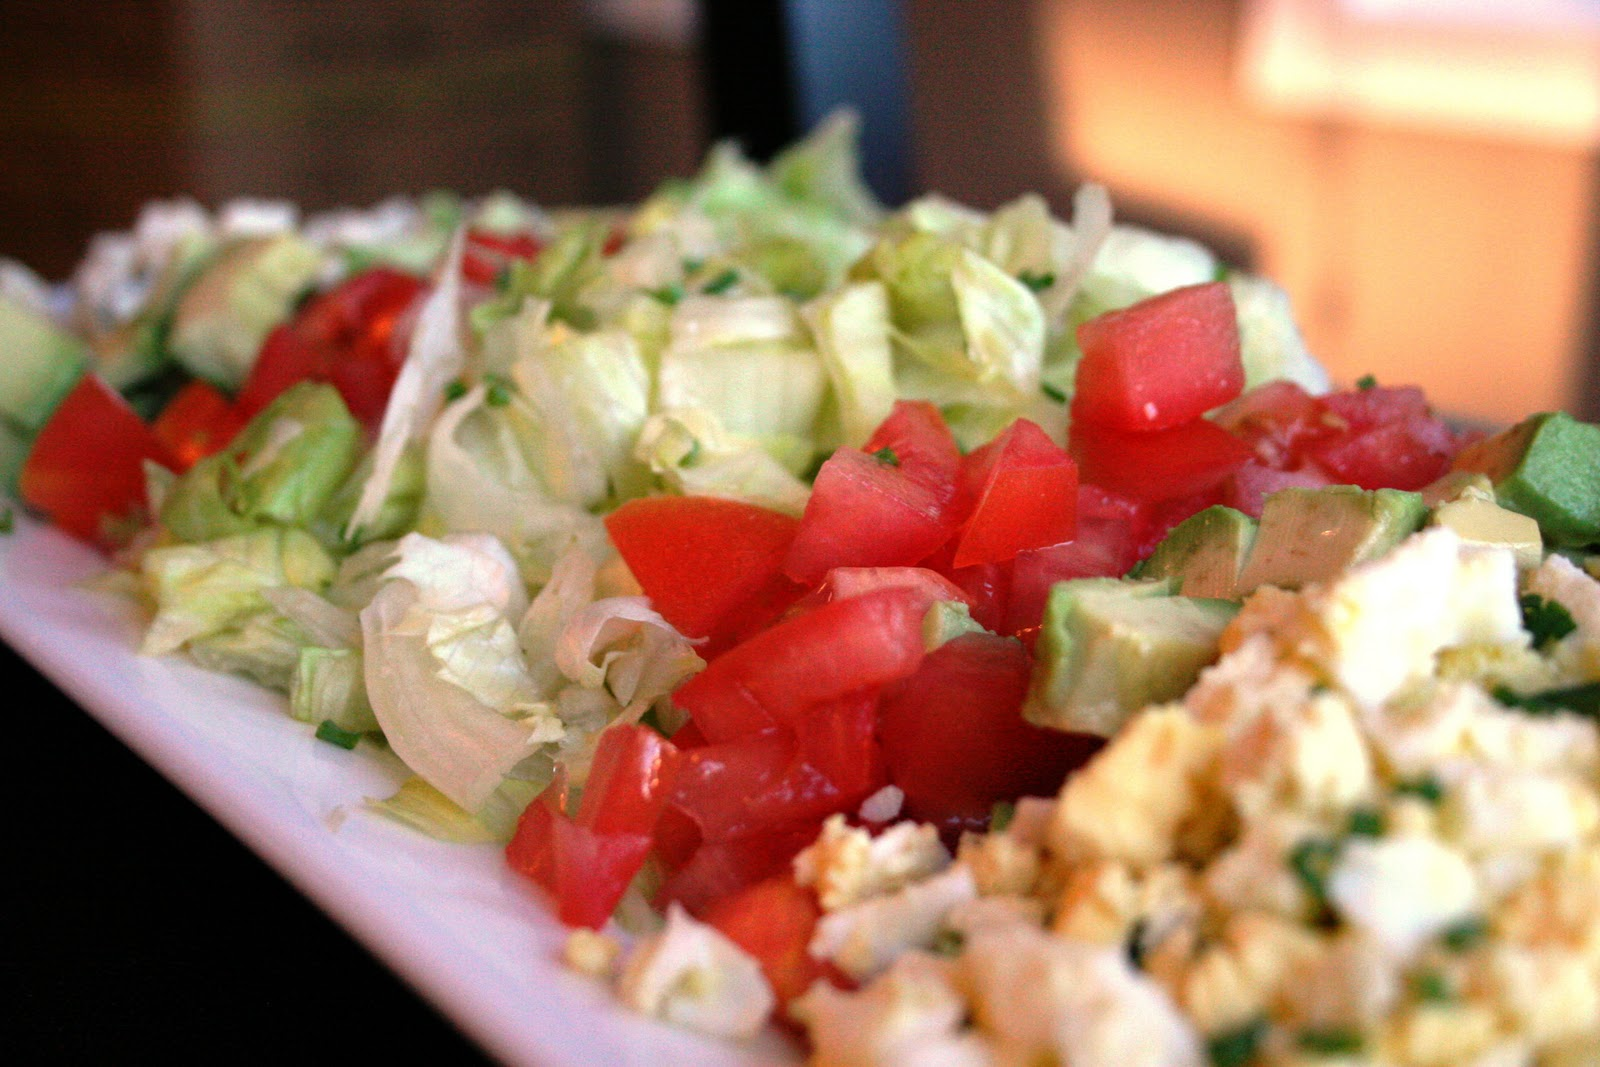 ... than takeout: Vegetarian Cobb Salad and Easy Homemade Salad Dressing